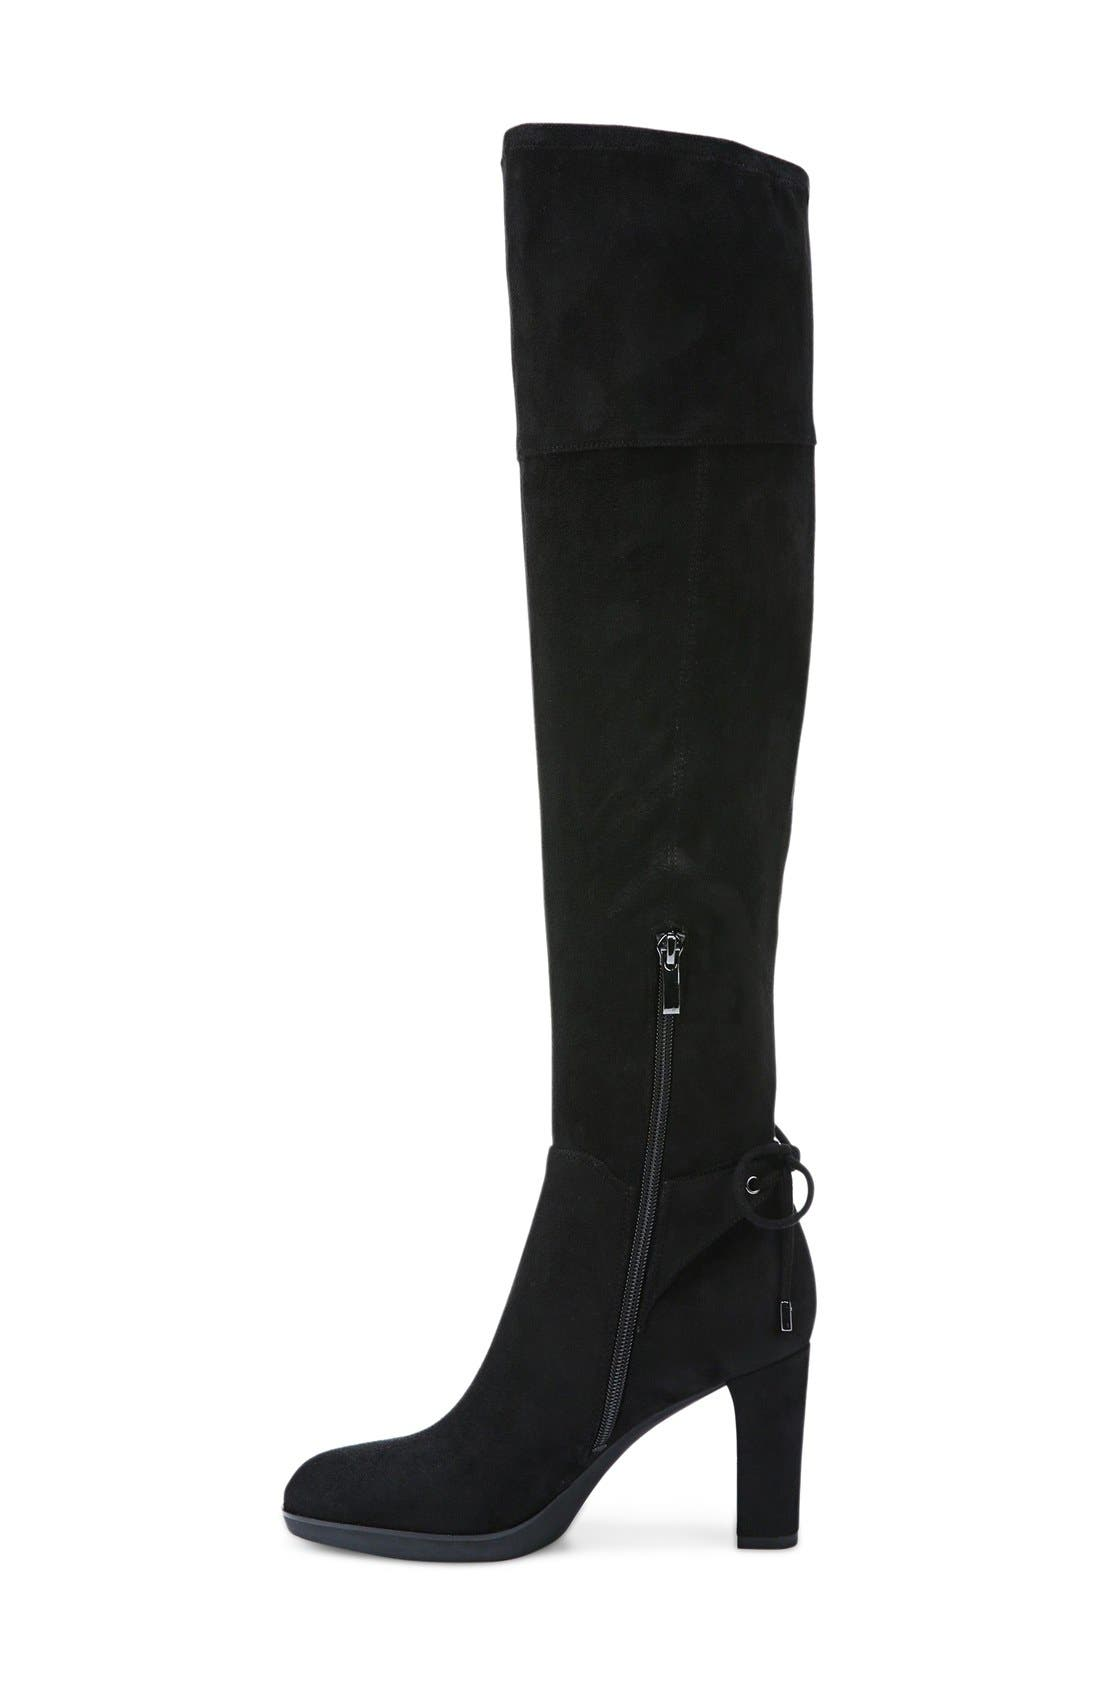 Ivanea Over the Knee Boot,                             Alternate thumbnail 4, color,                             001